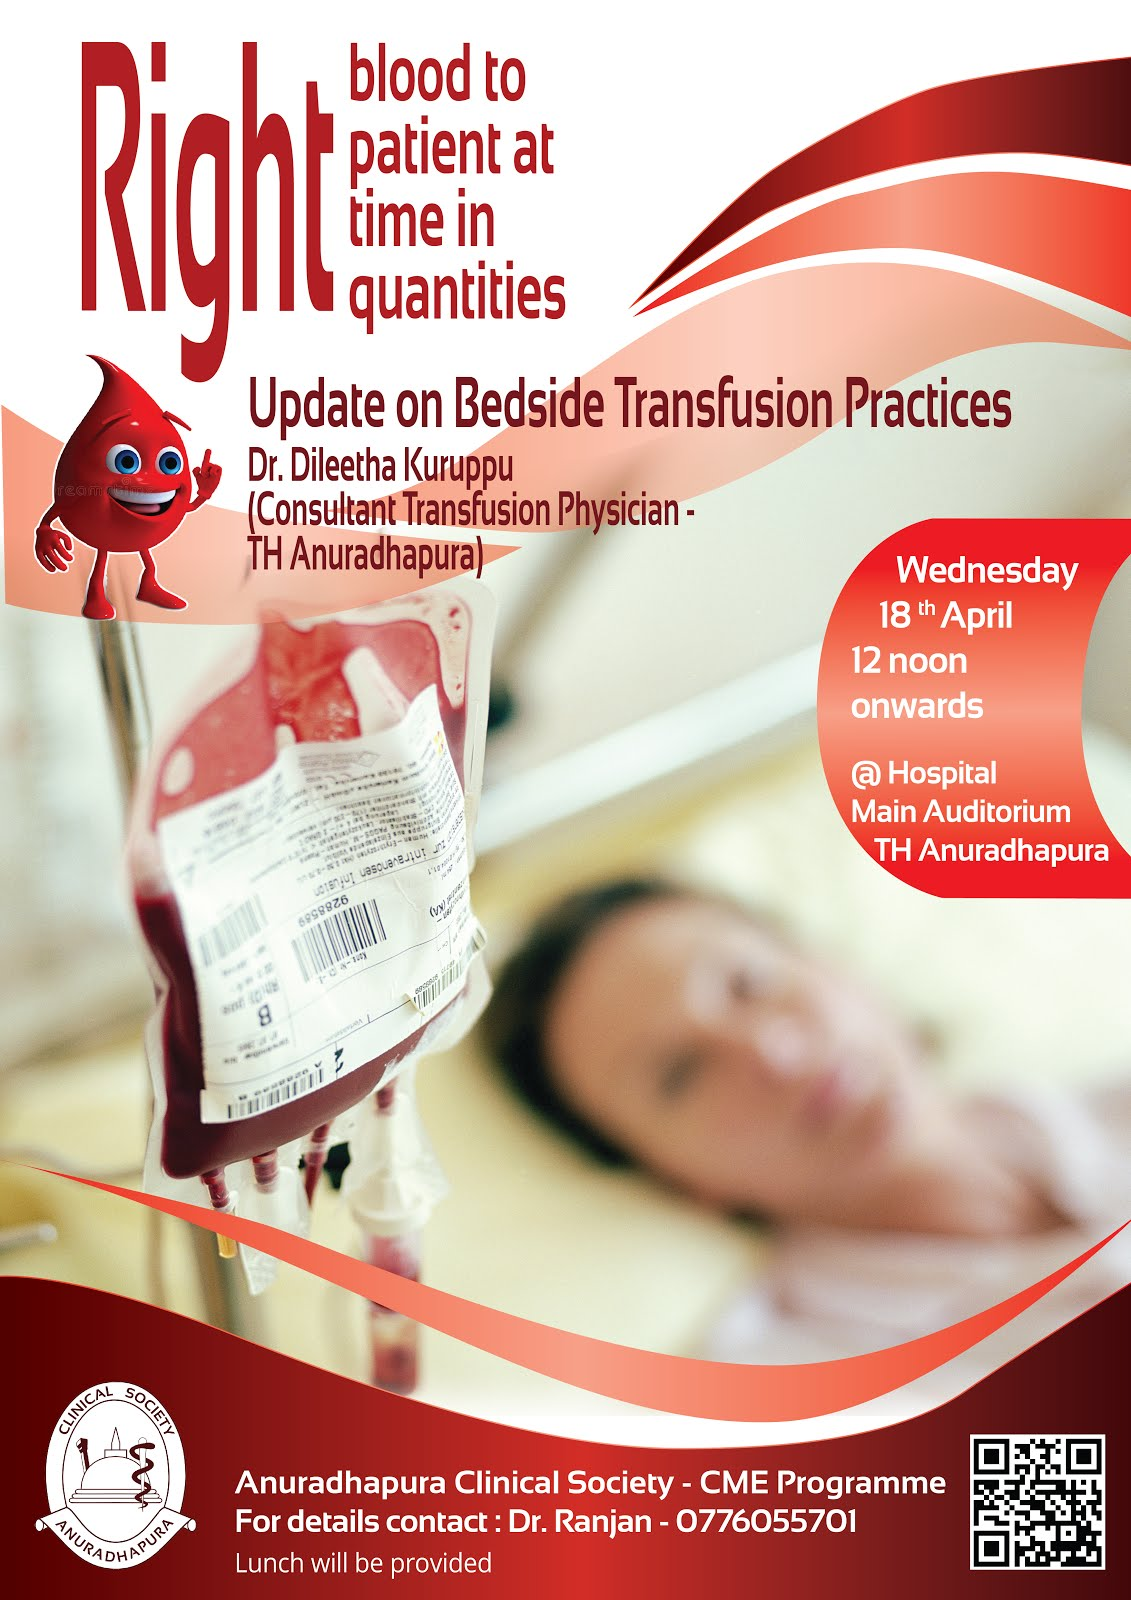 Update on Bedside Transfusion Practices